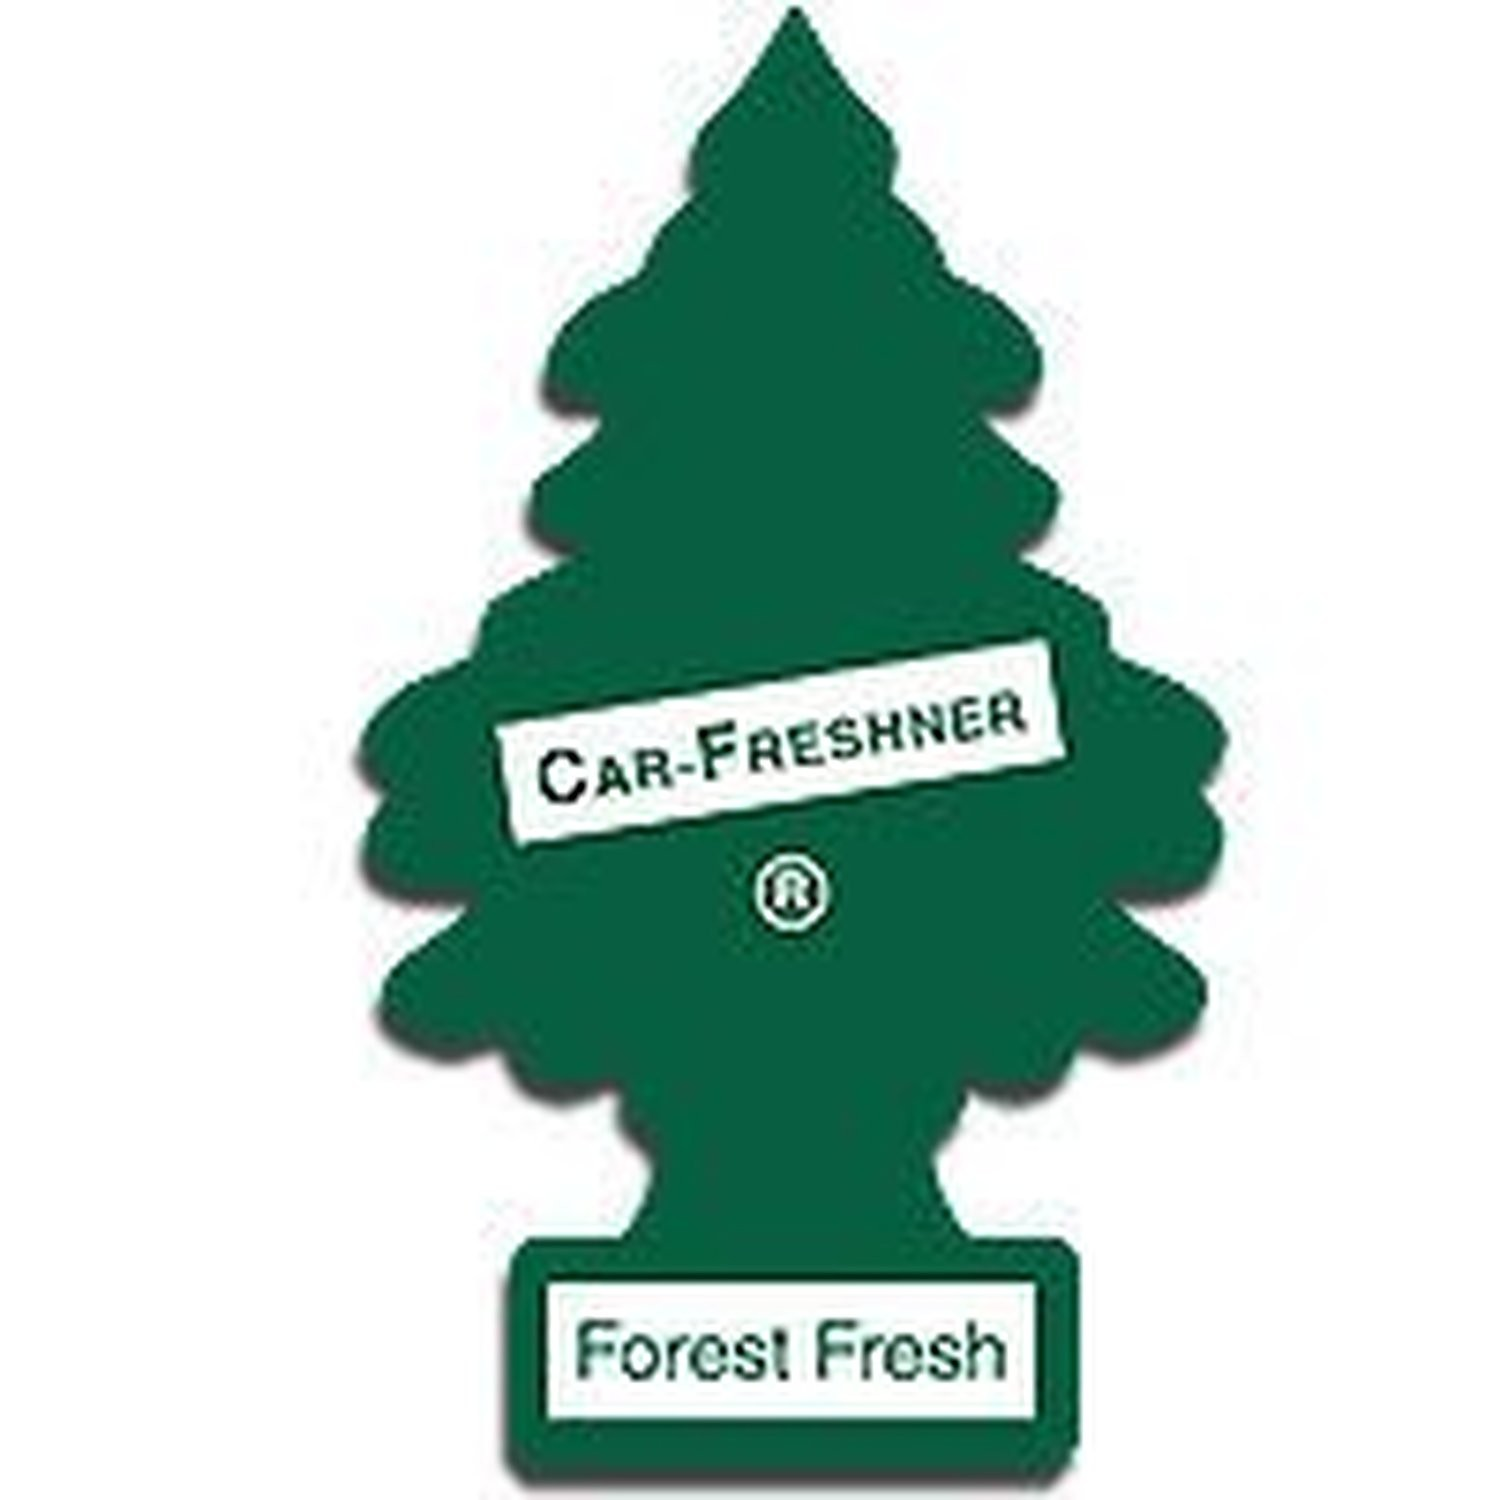 AoE Performance Magic Tree Car Air Freshener Duo Gift Pack Forest Fresh And Oceans Mist